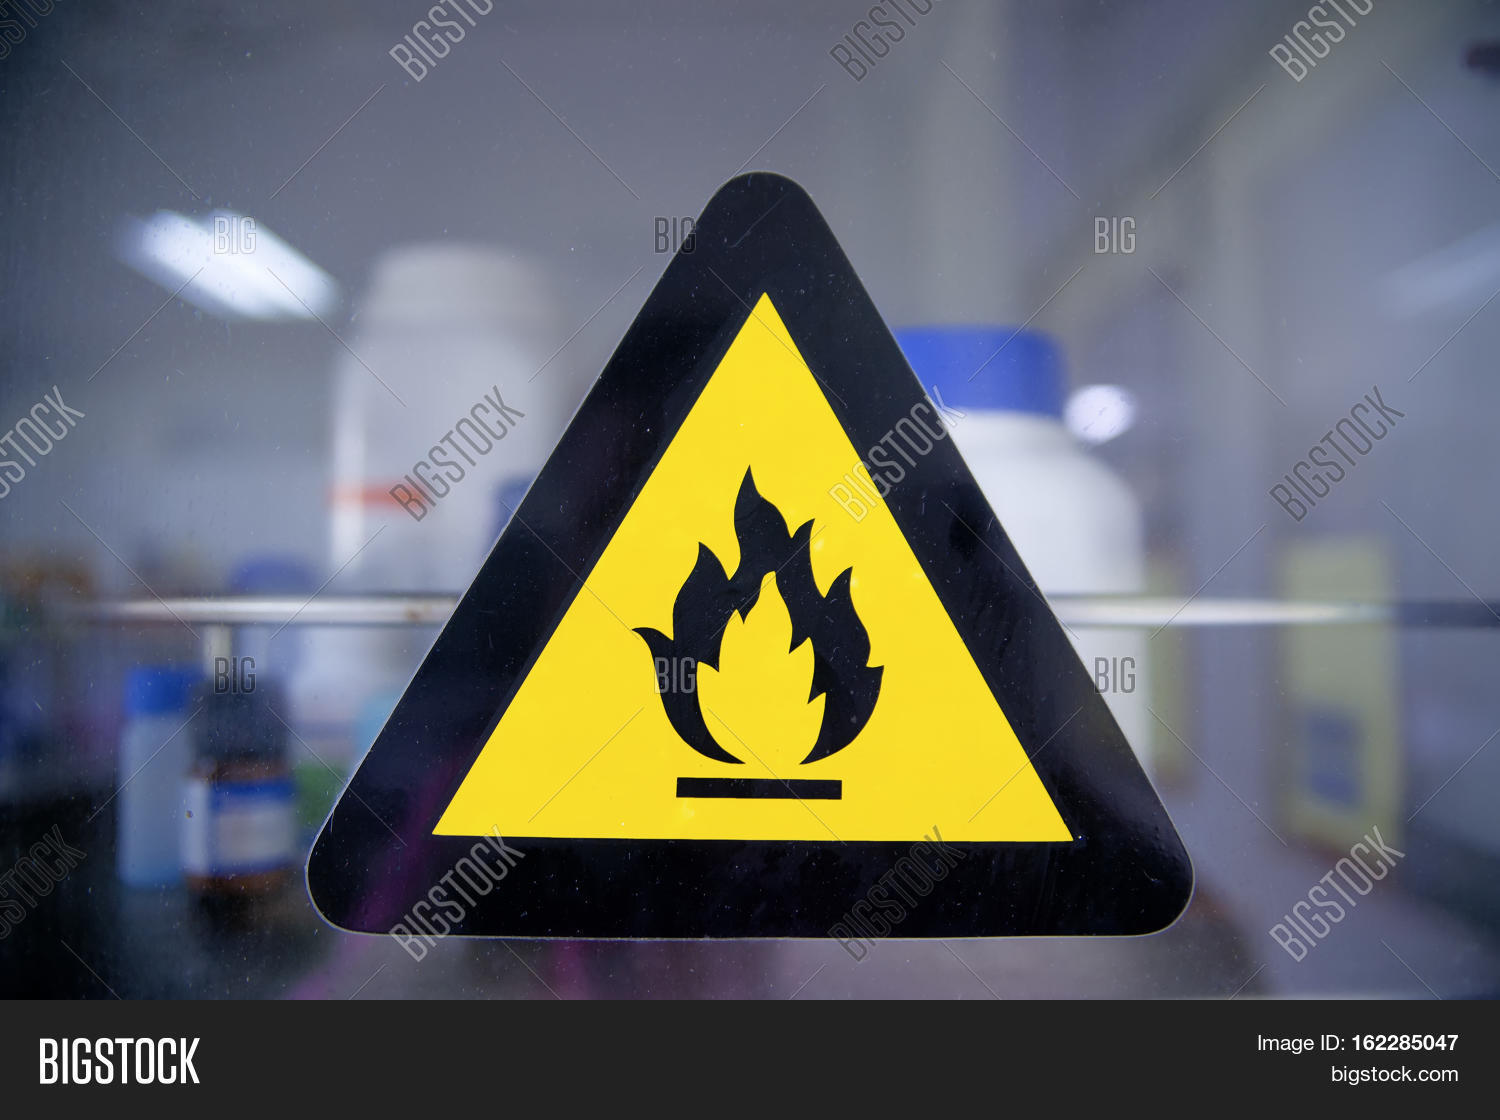 Hazard Symbols Image Photo Free Trial Bigstock